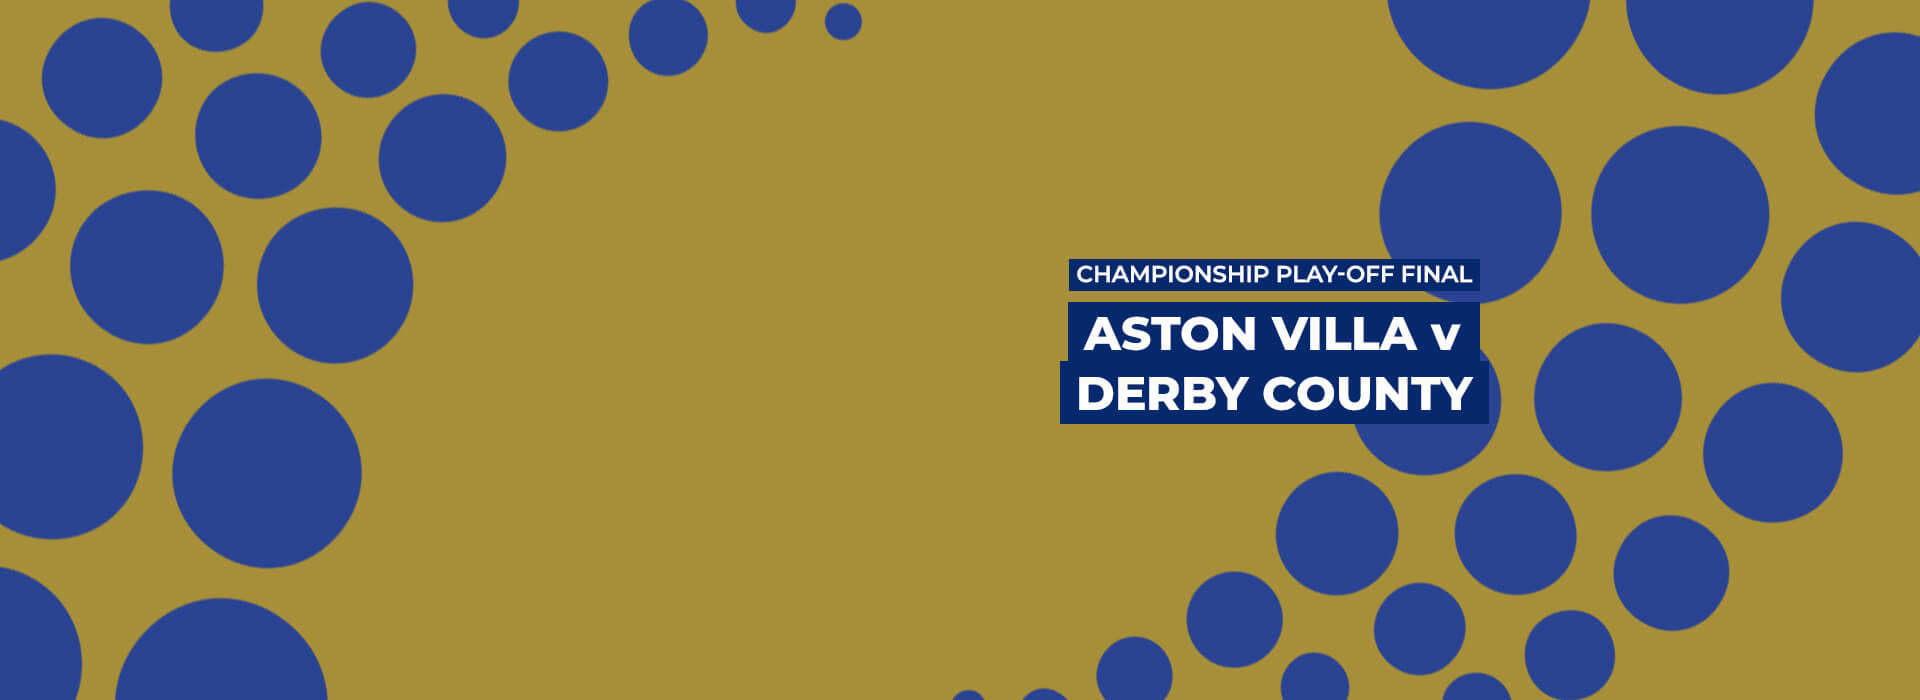 Aston Villa vs Derby County: Championship Play-off Final Betting Preview